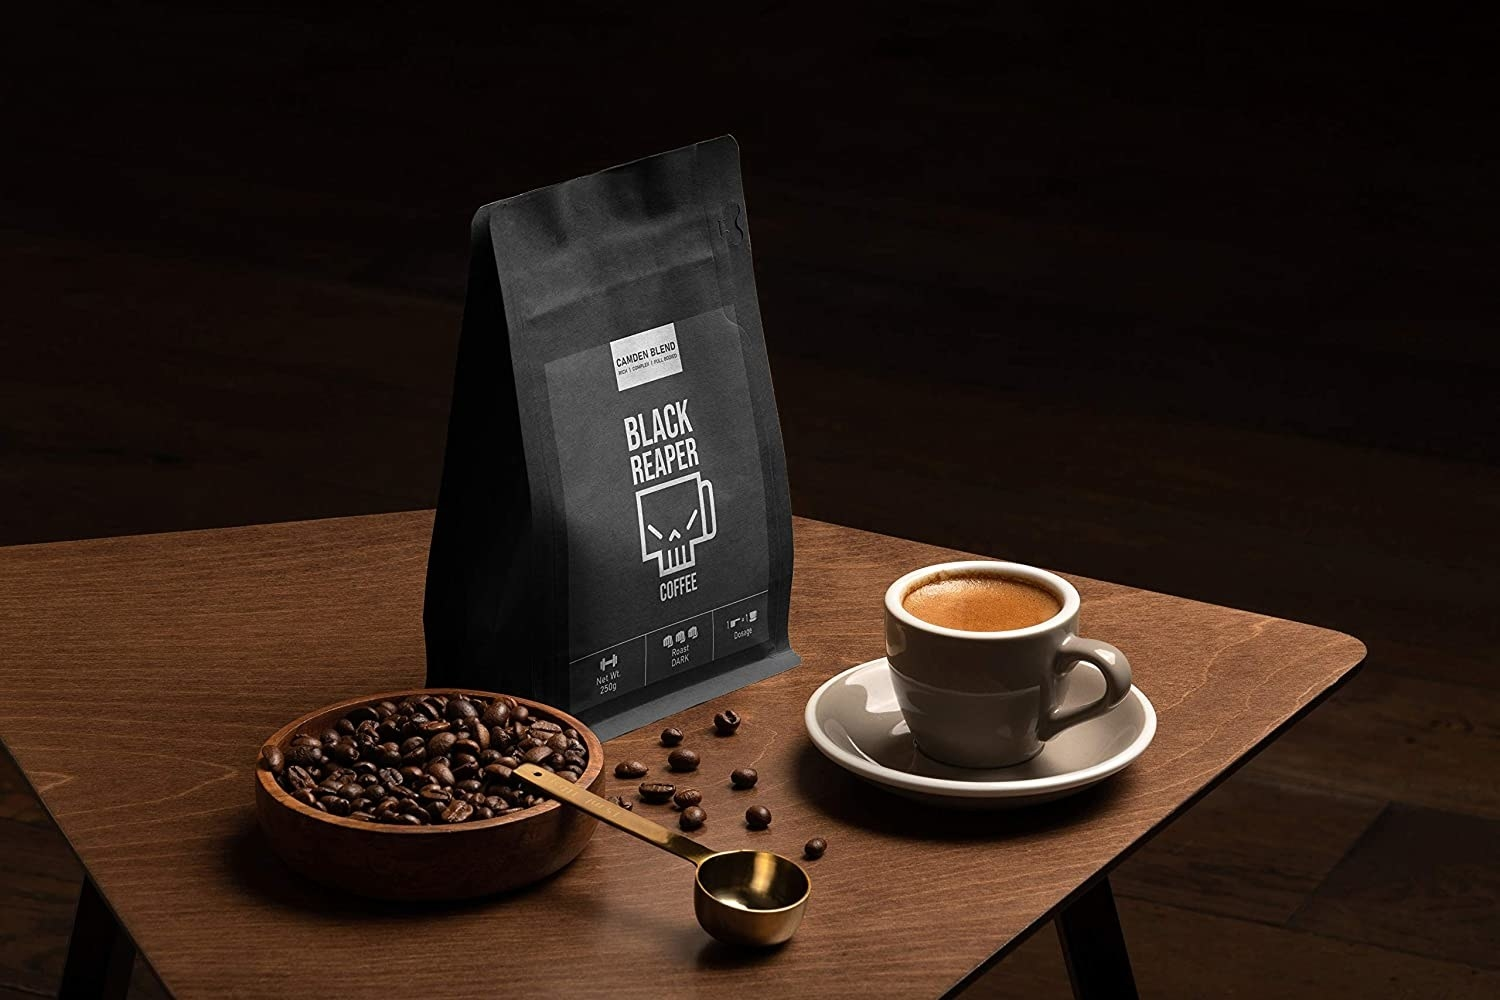 A packet of Black Reaper on a table with a cup of coffee and some coffee beans in a bowl next to it.